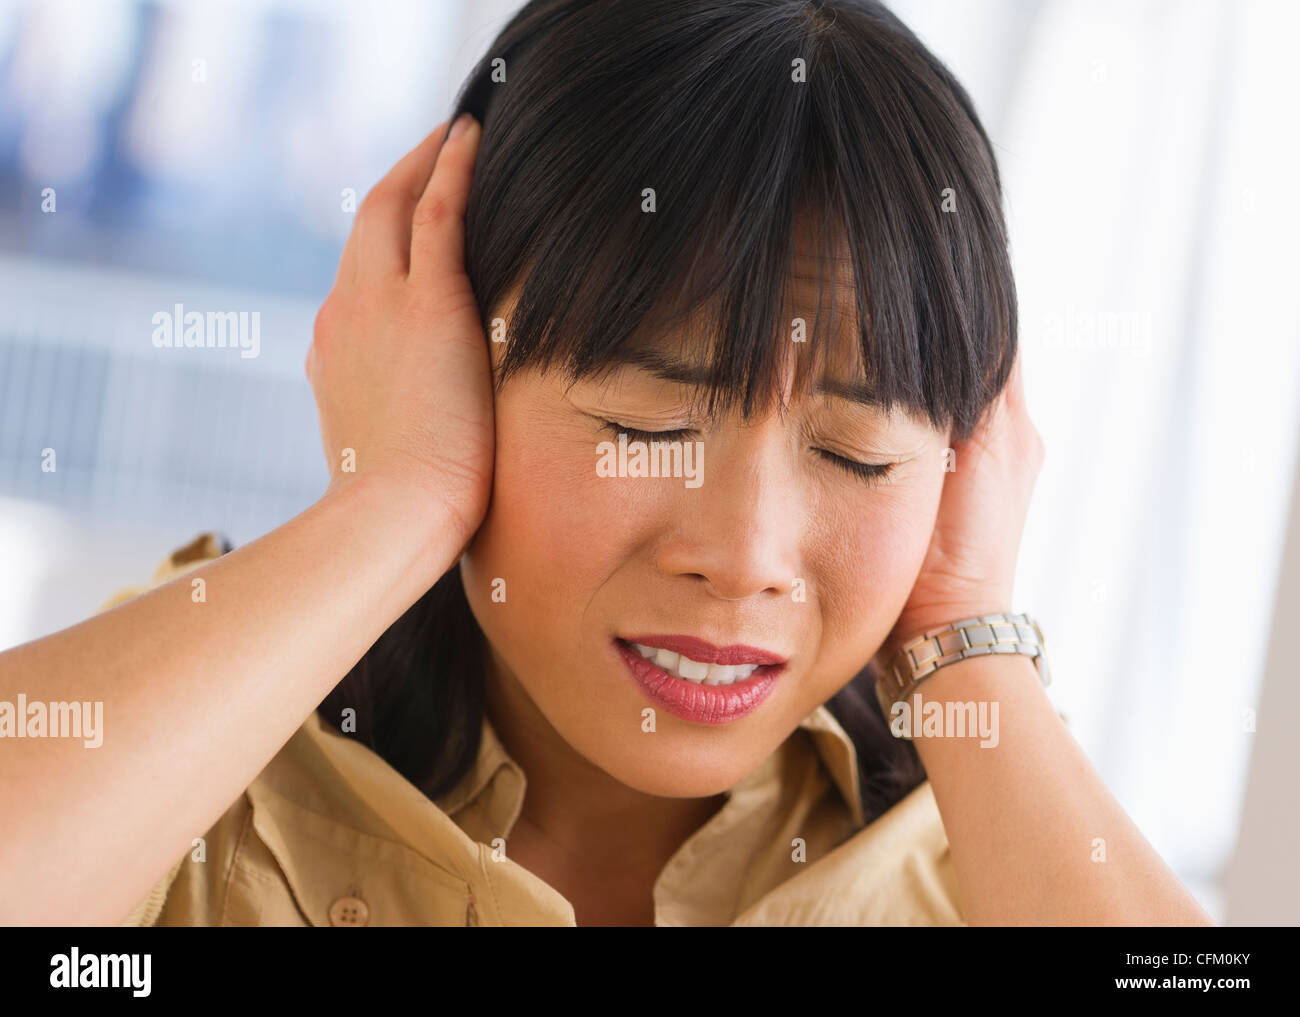 USA, New Jersey, Jersey City, Woman covering ears - Stock Image